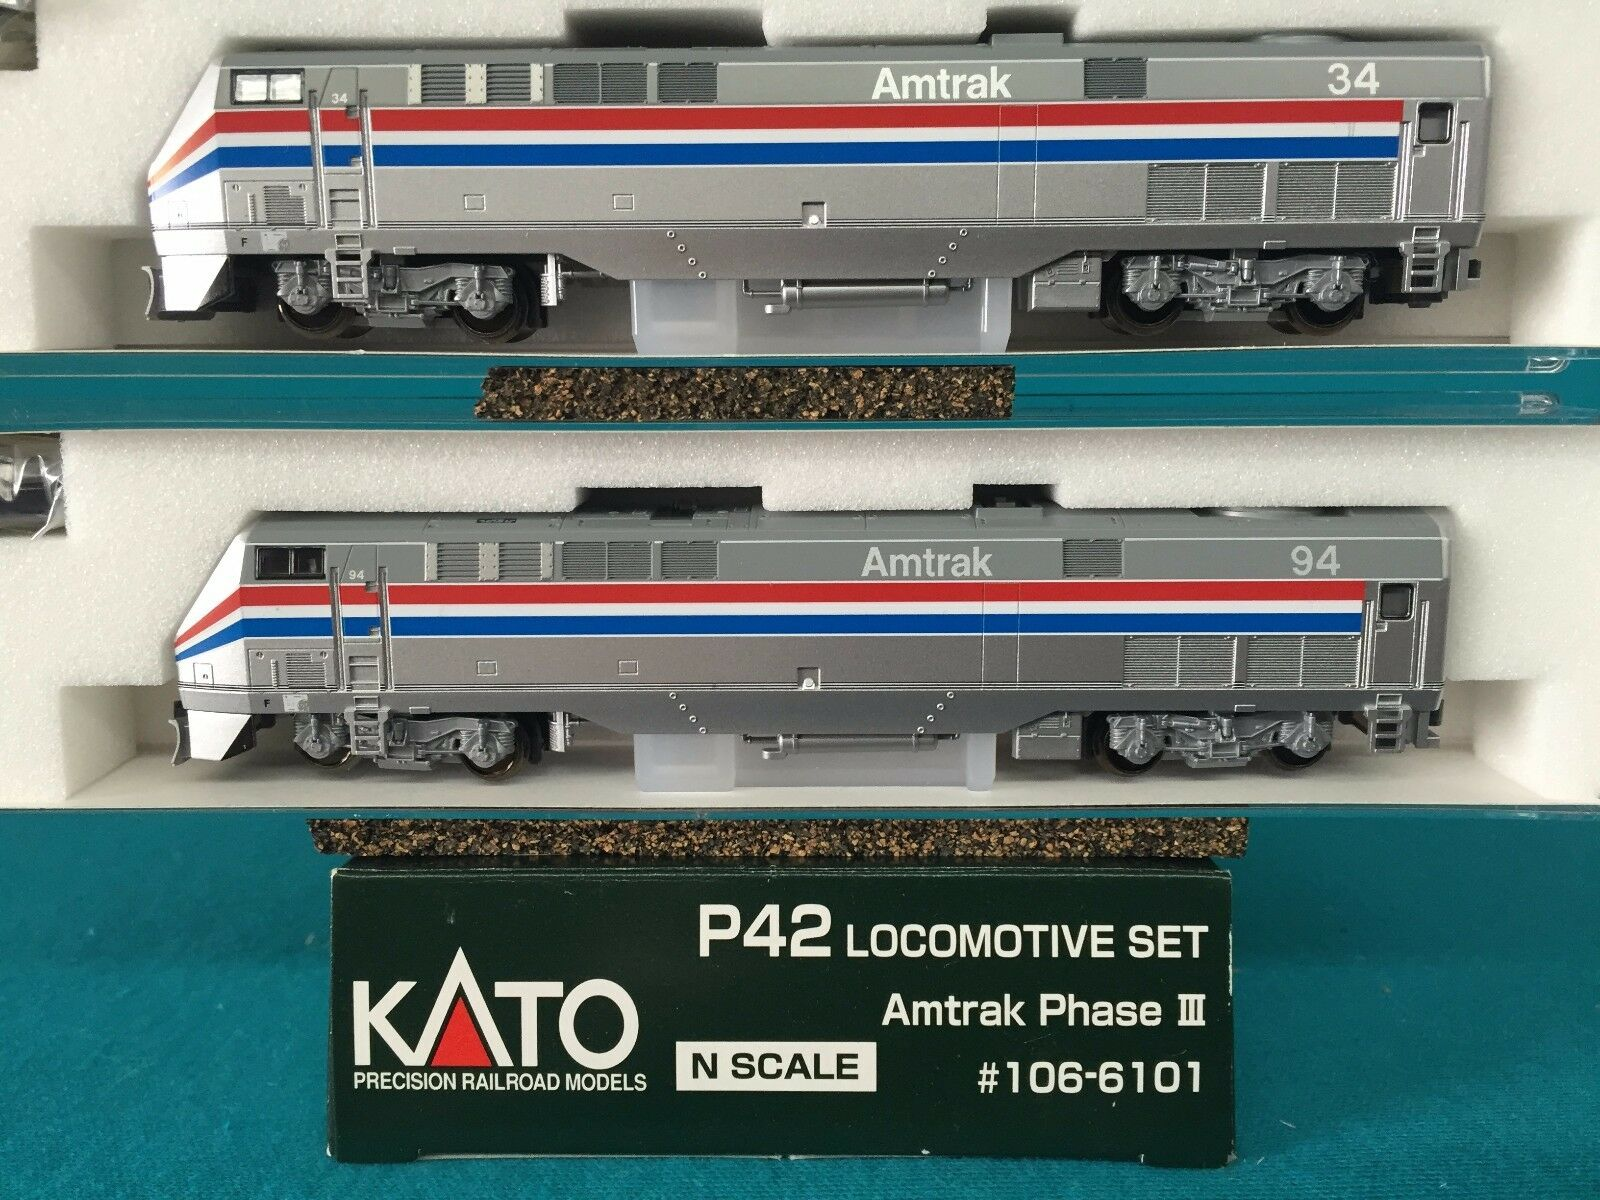 176-6101A Kato N Scale P42 Amtrak Phase III Locomotive -2 -2 -2 Car Set  Rd 34 94 NIB 20b557